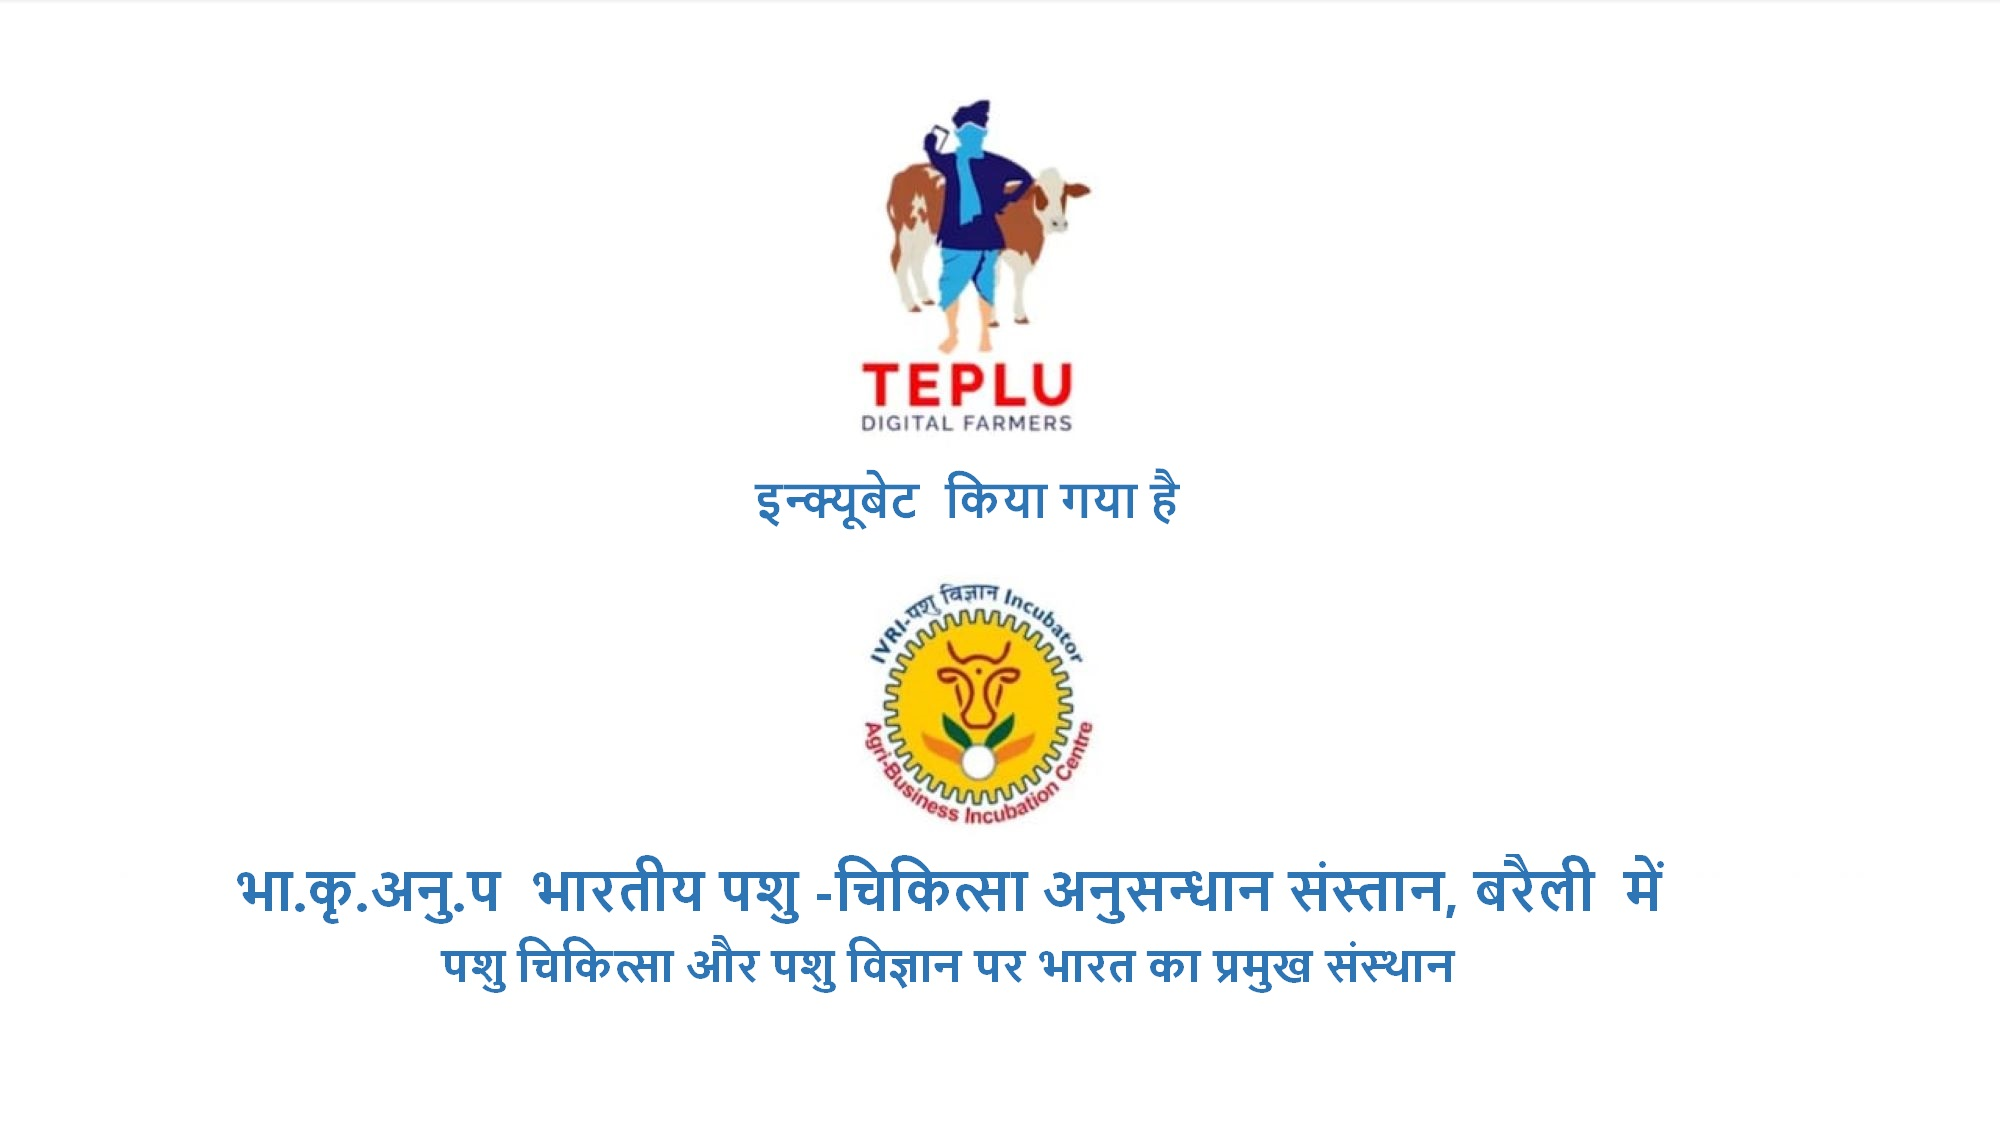 For dairy farming course Teplu consults top institutions like IVRI and visits dairy farms